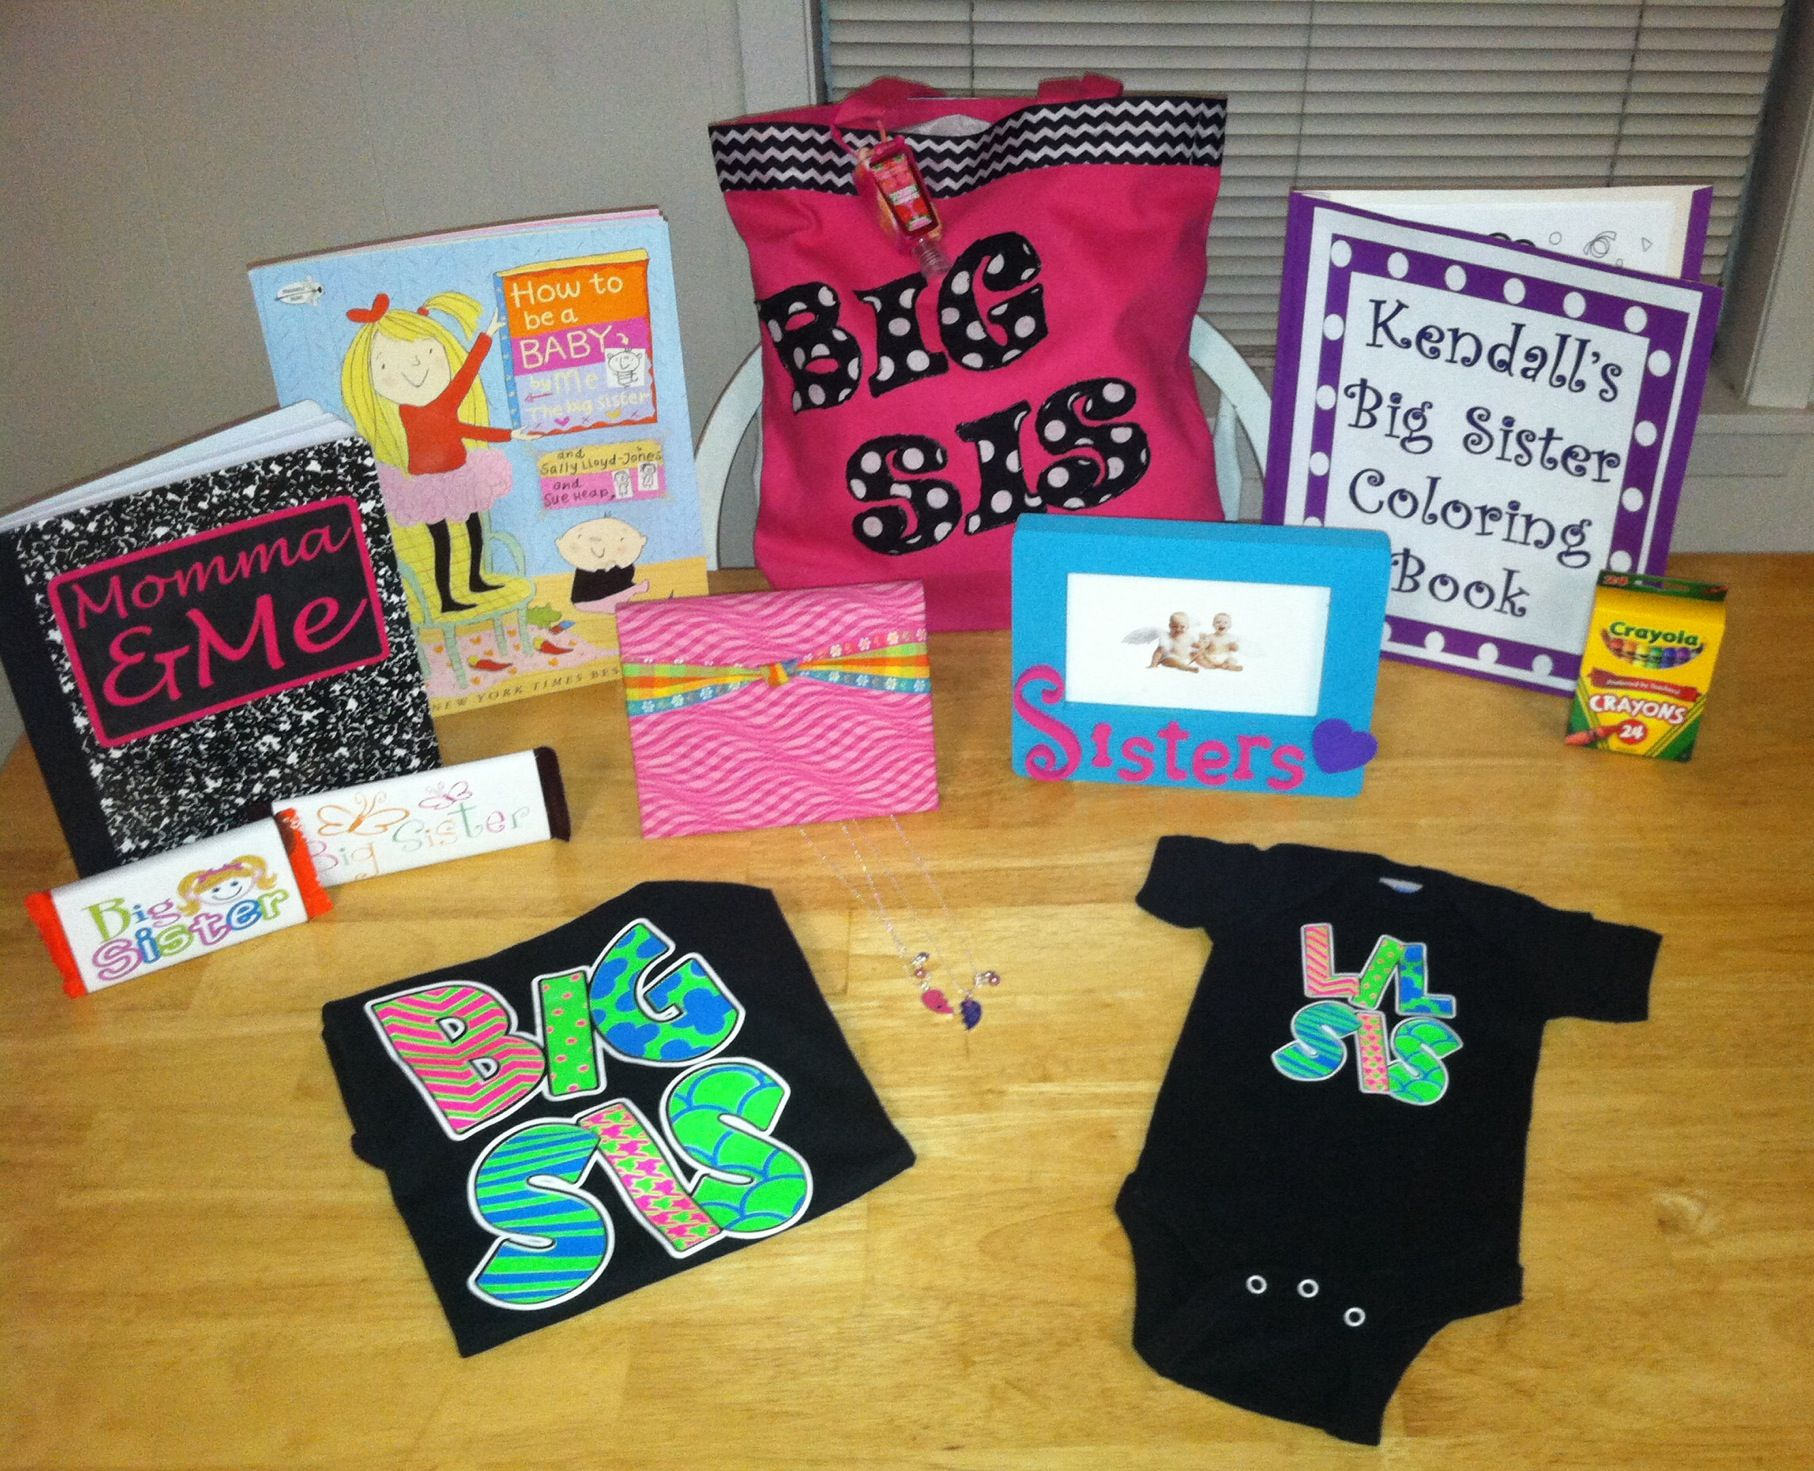 Kendalls Big Sister Bag for the hospital Momma and me book for